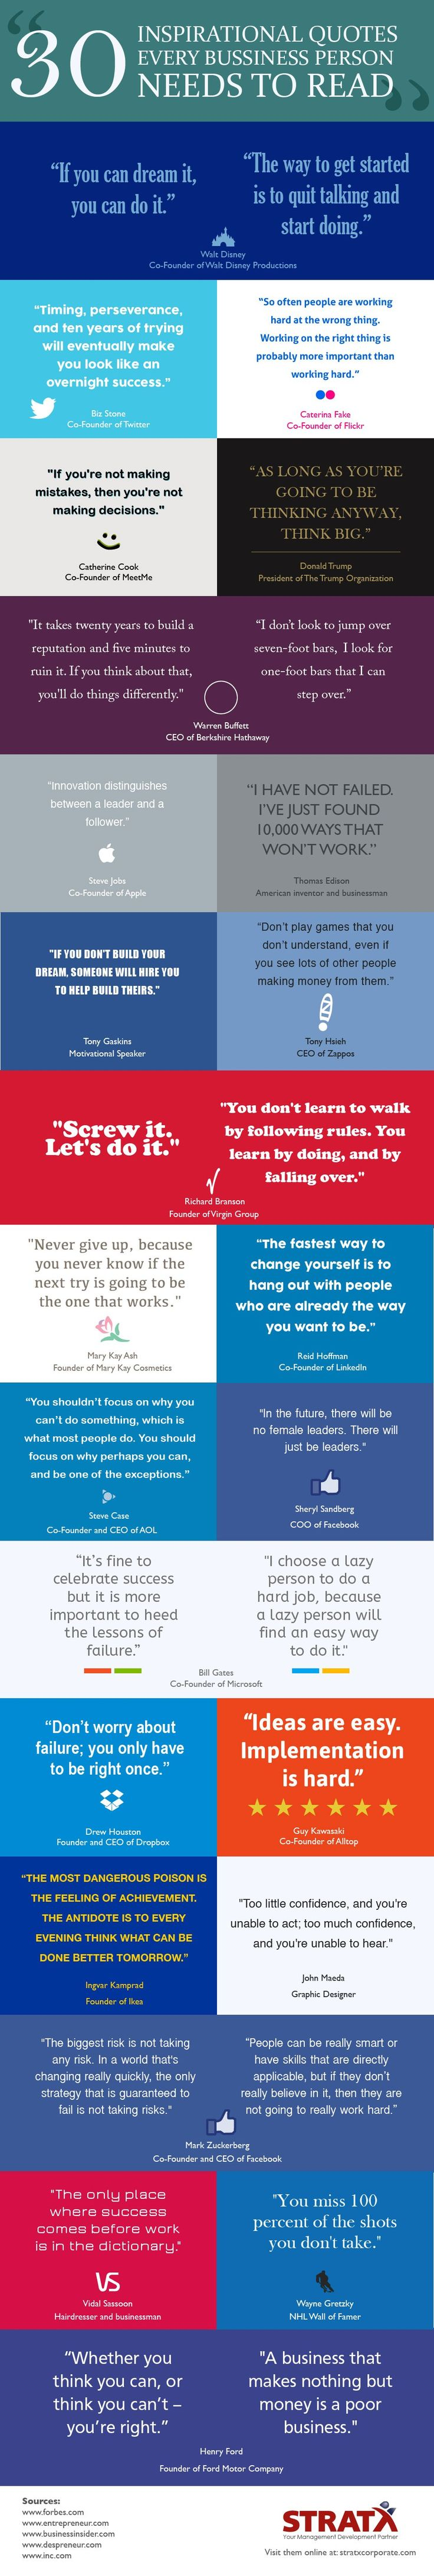 30 Inspirational Quotes Every Business Person Needs To Read #infographic #Business #Entrepreneur #Quotes